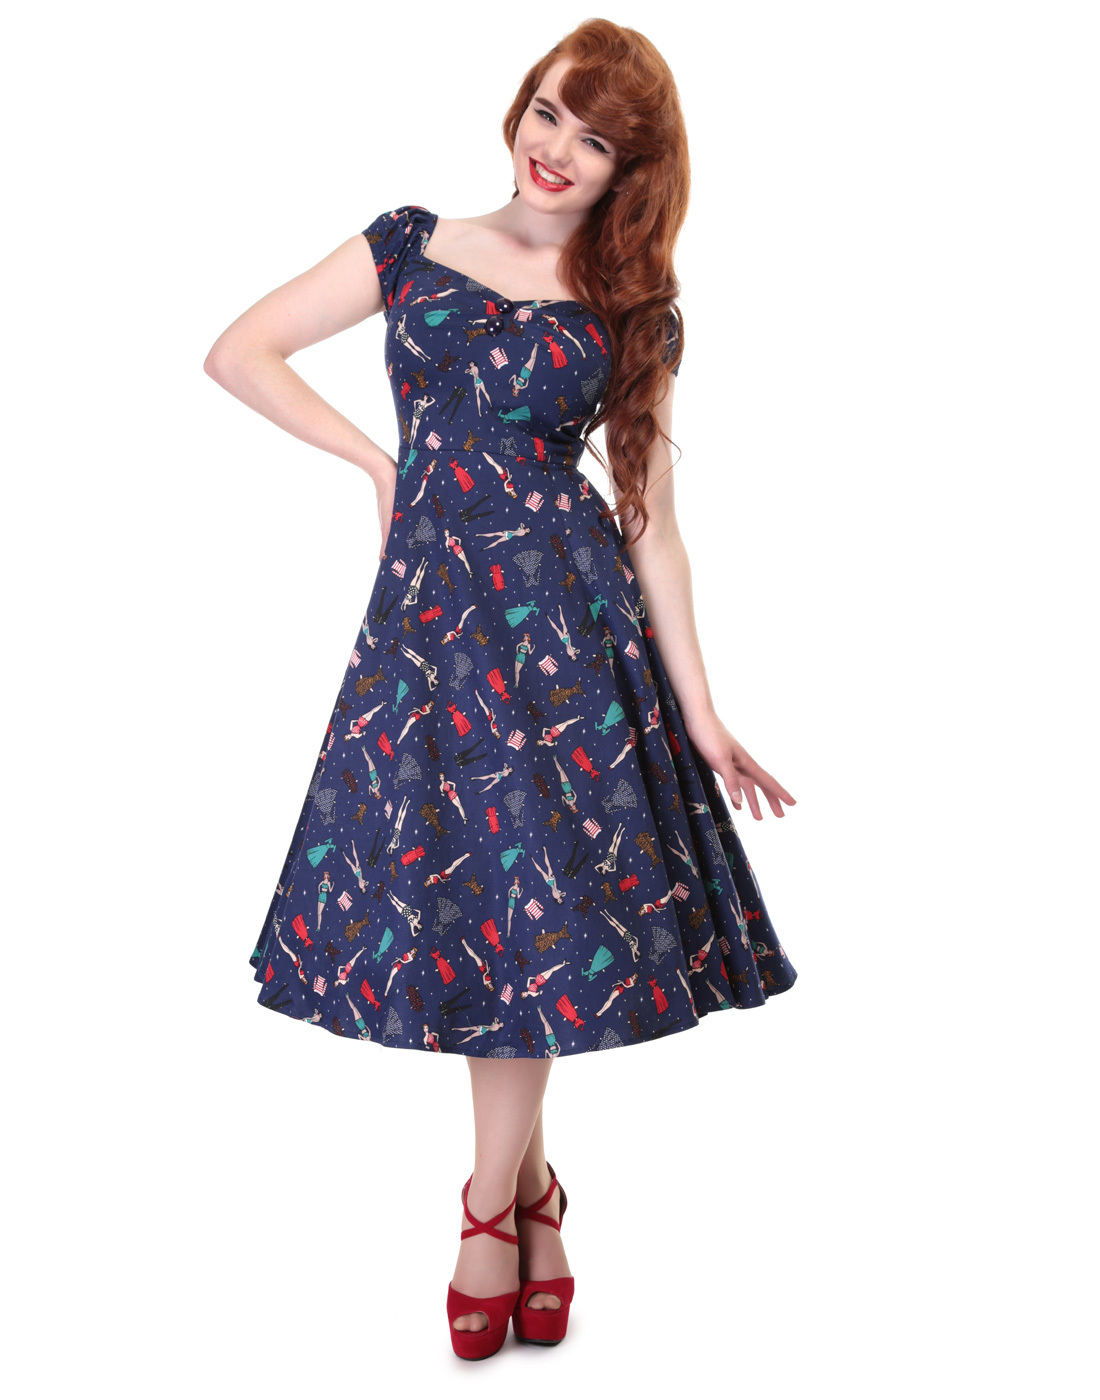 Dolores COLLECTIF 1950s Vintage Pin Up Doll Dress